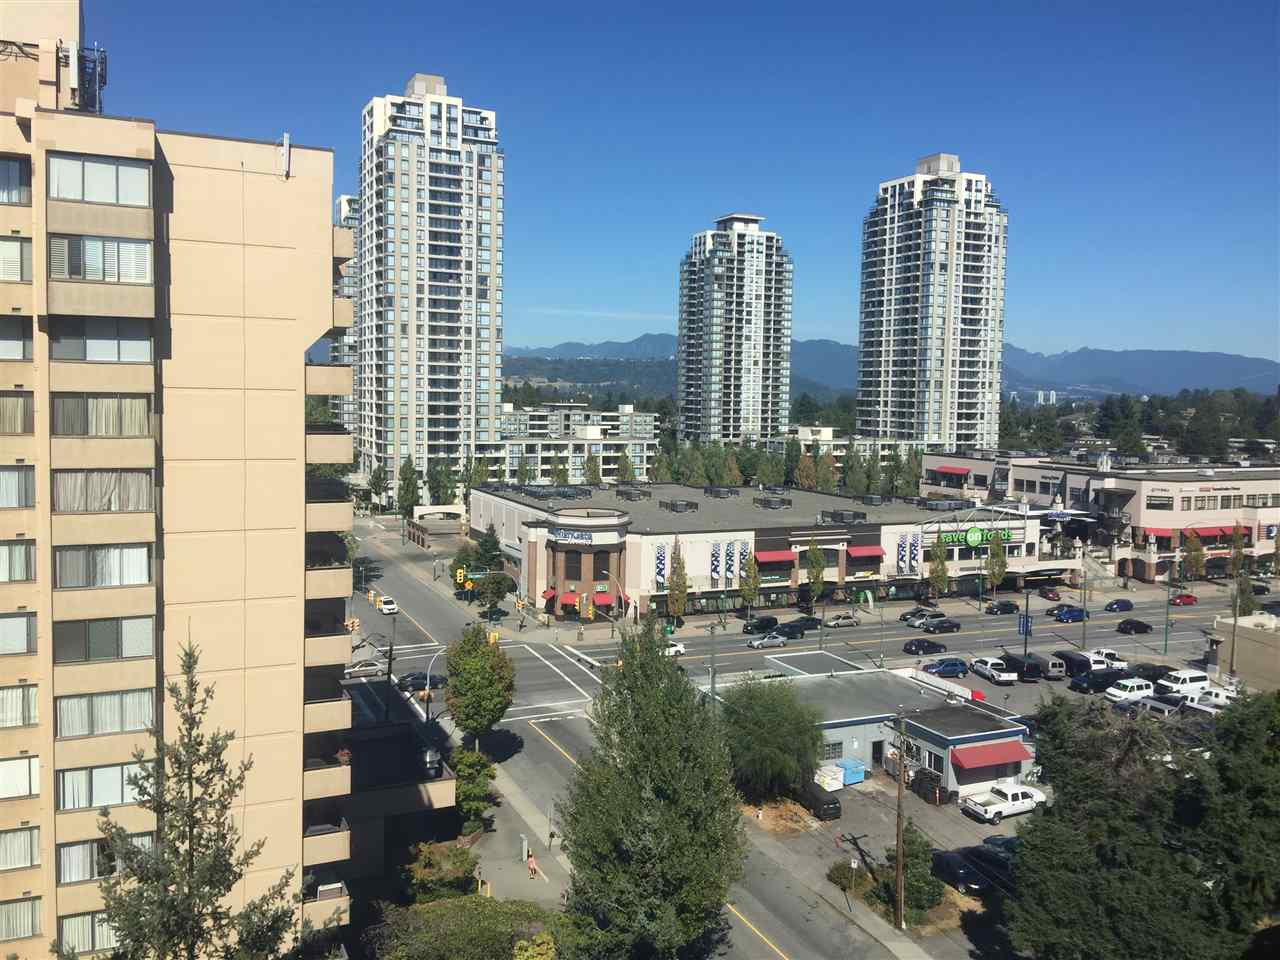 Kingsbury, well maintained complex in South Burnaby HighGate area. Short walking distance to HighGate shopping centre, bus transit and Edmonds skytrain station. This is a corner unit with beautiful view of North Shore mountain and city lights. Very functional floor plan with good size separated bedroom on each side and a large balcony. Laminate flooring throughout the home for easy maintenance. Updated kitchen cabinet and newer appliances. The building has shared laundry and secure FOB entrance system. One underground parking and one storage locker. Low monthly strata fee includes heat and hot water. It's a great starter home.